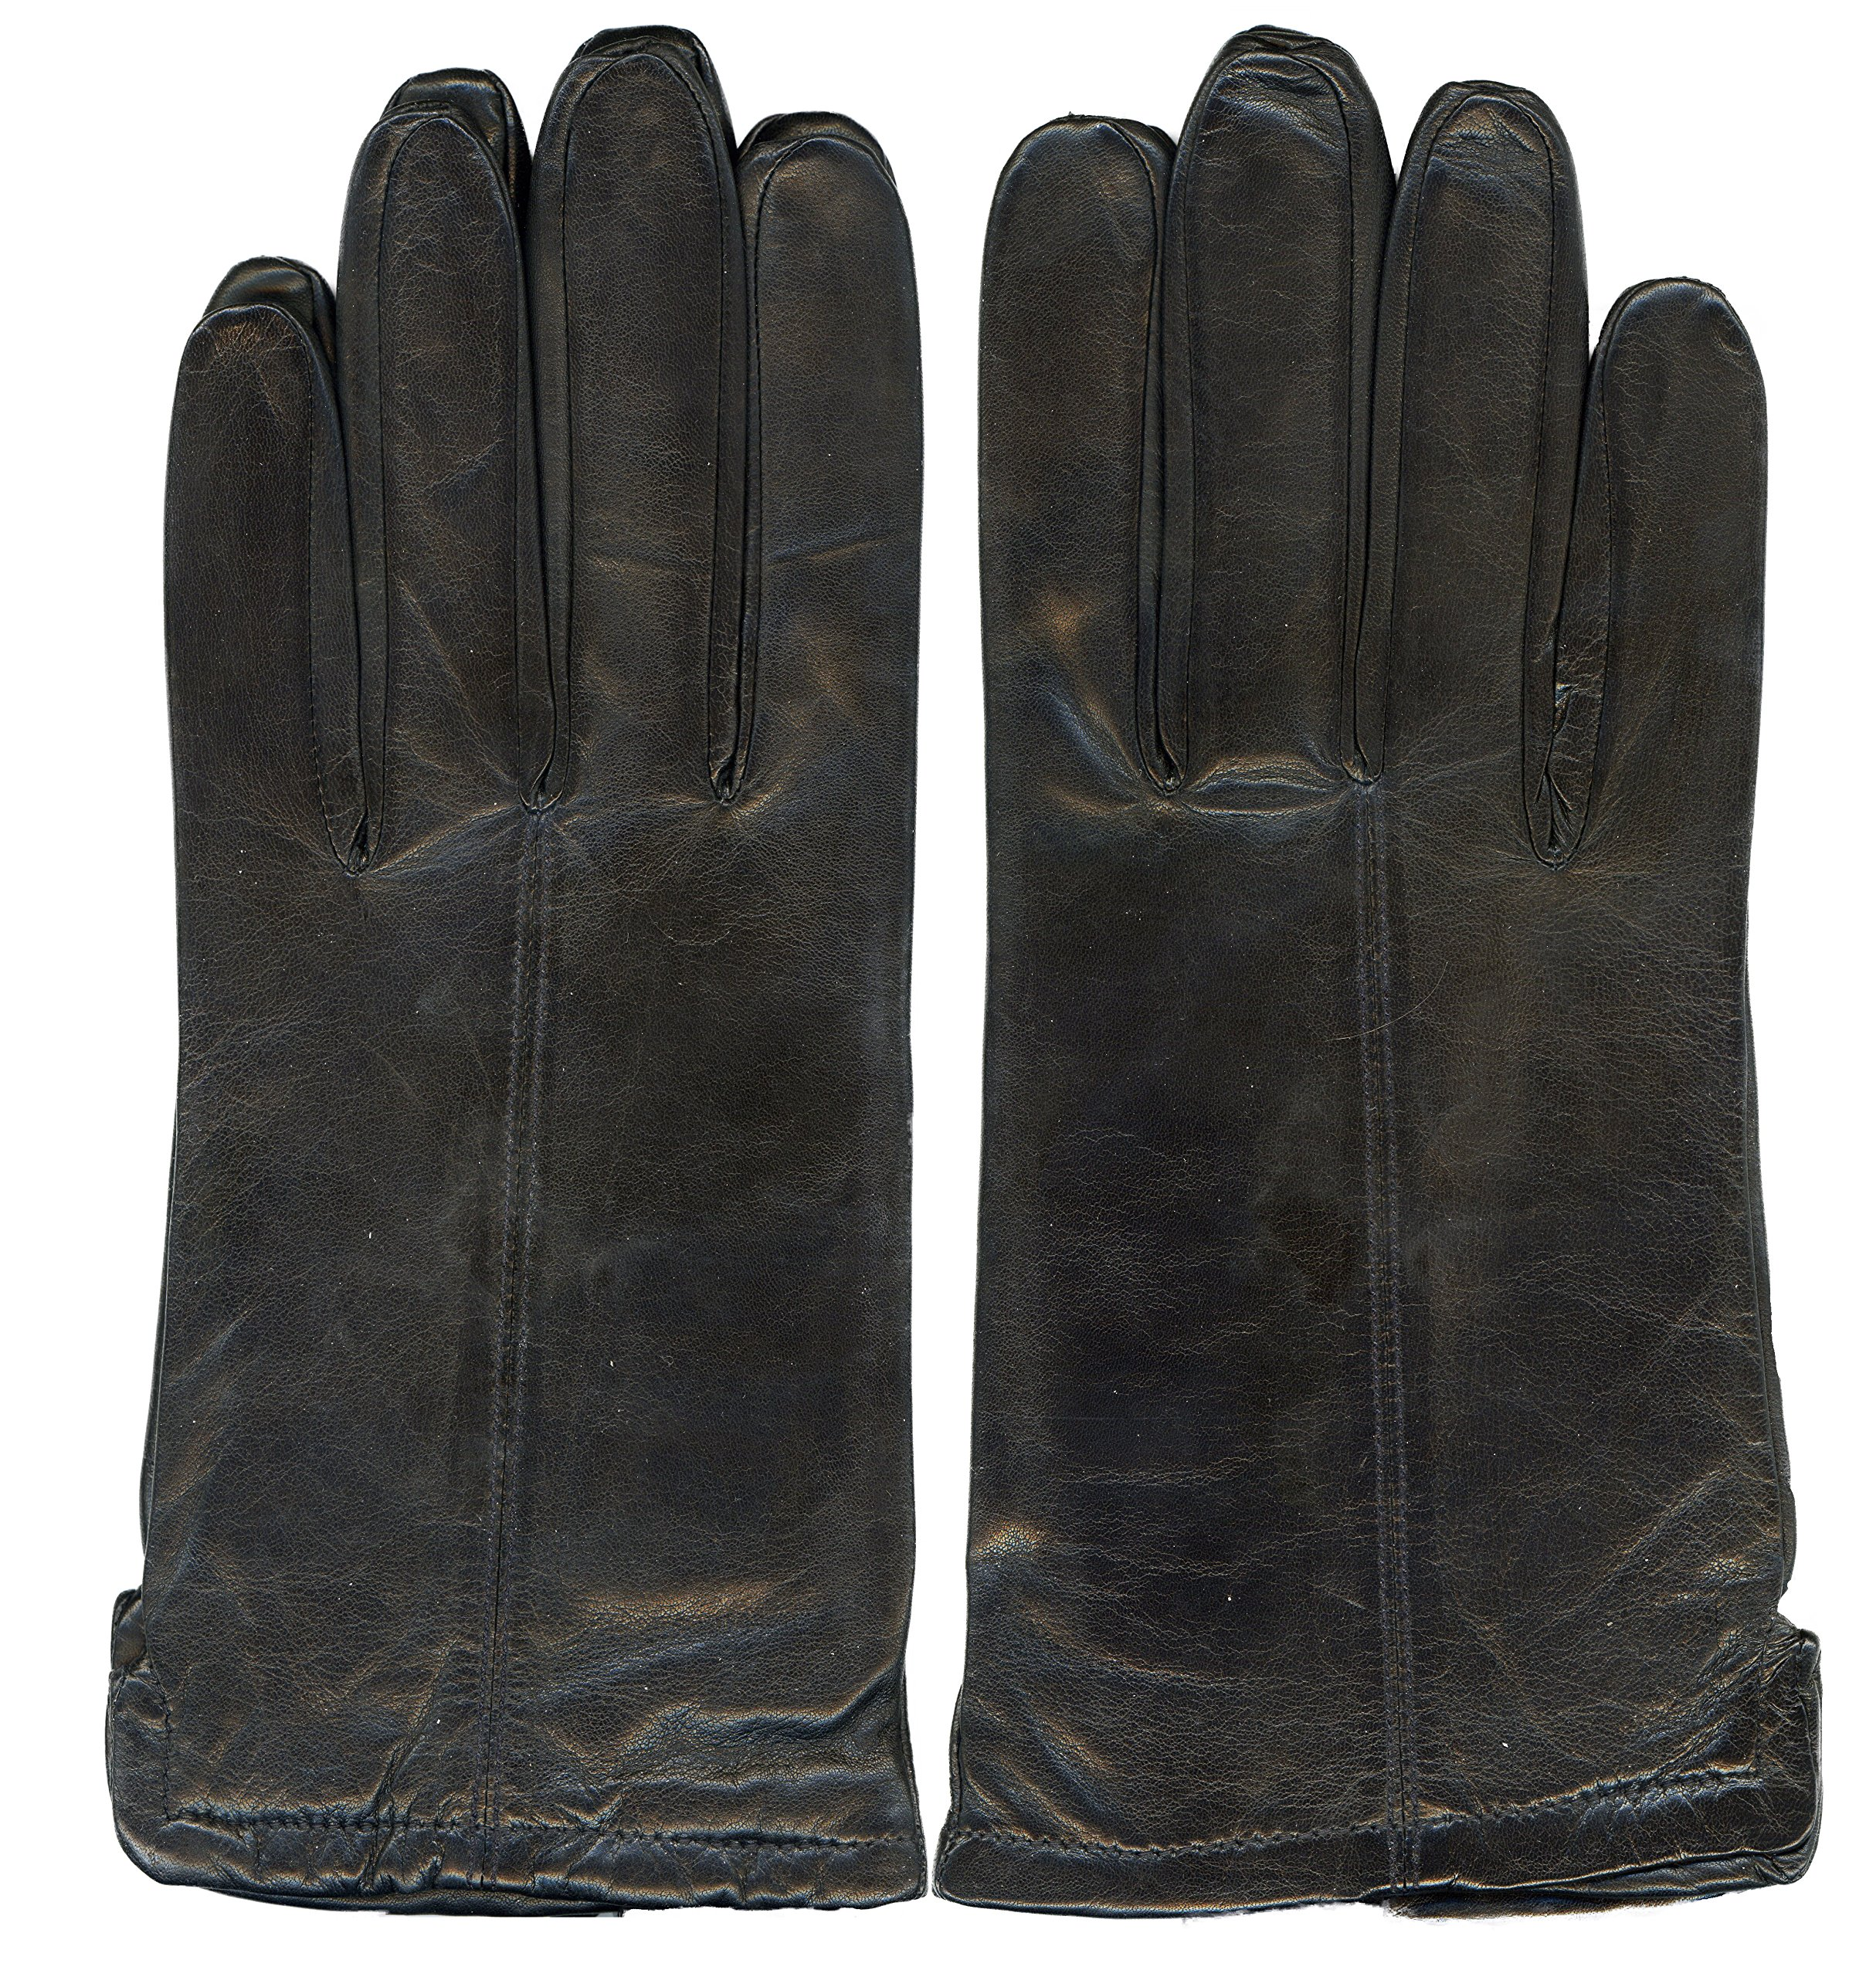 GRANDOE Men's LINCOLN 100% Sheepskin Leather Glove, CASHMERE Lambswool Lining, Color Black, Size XL